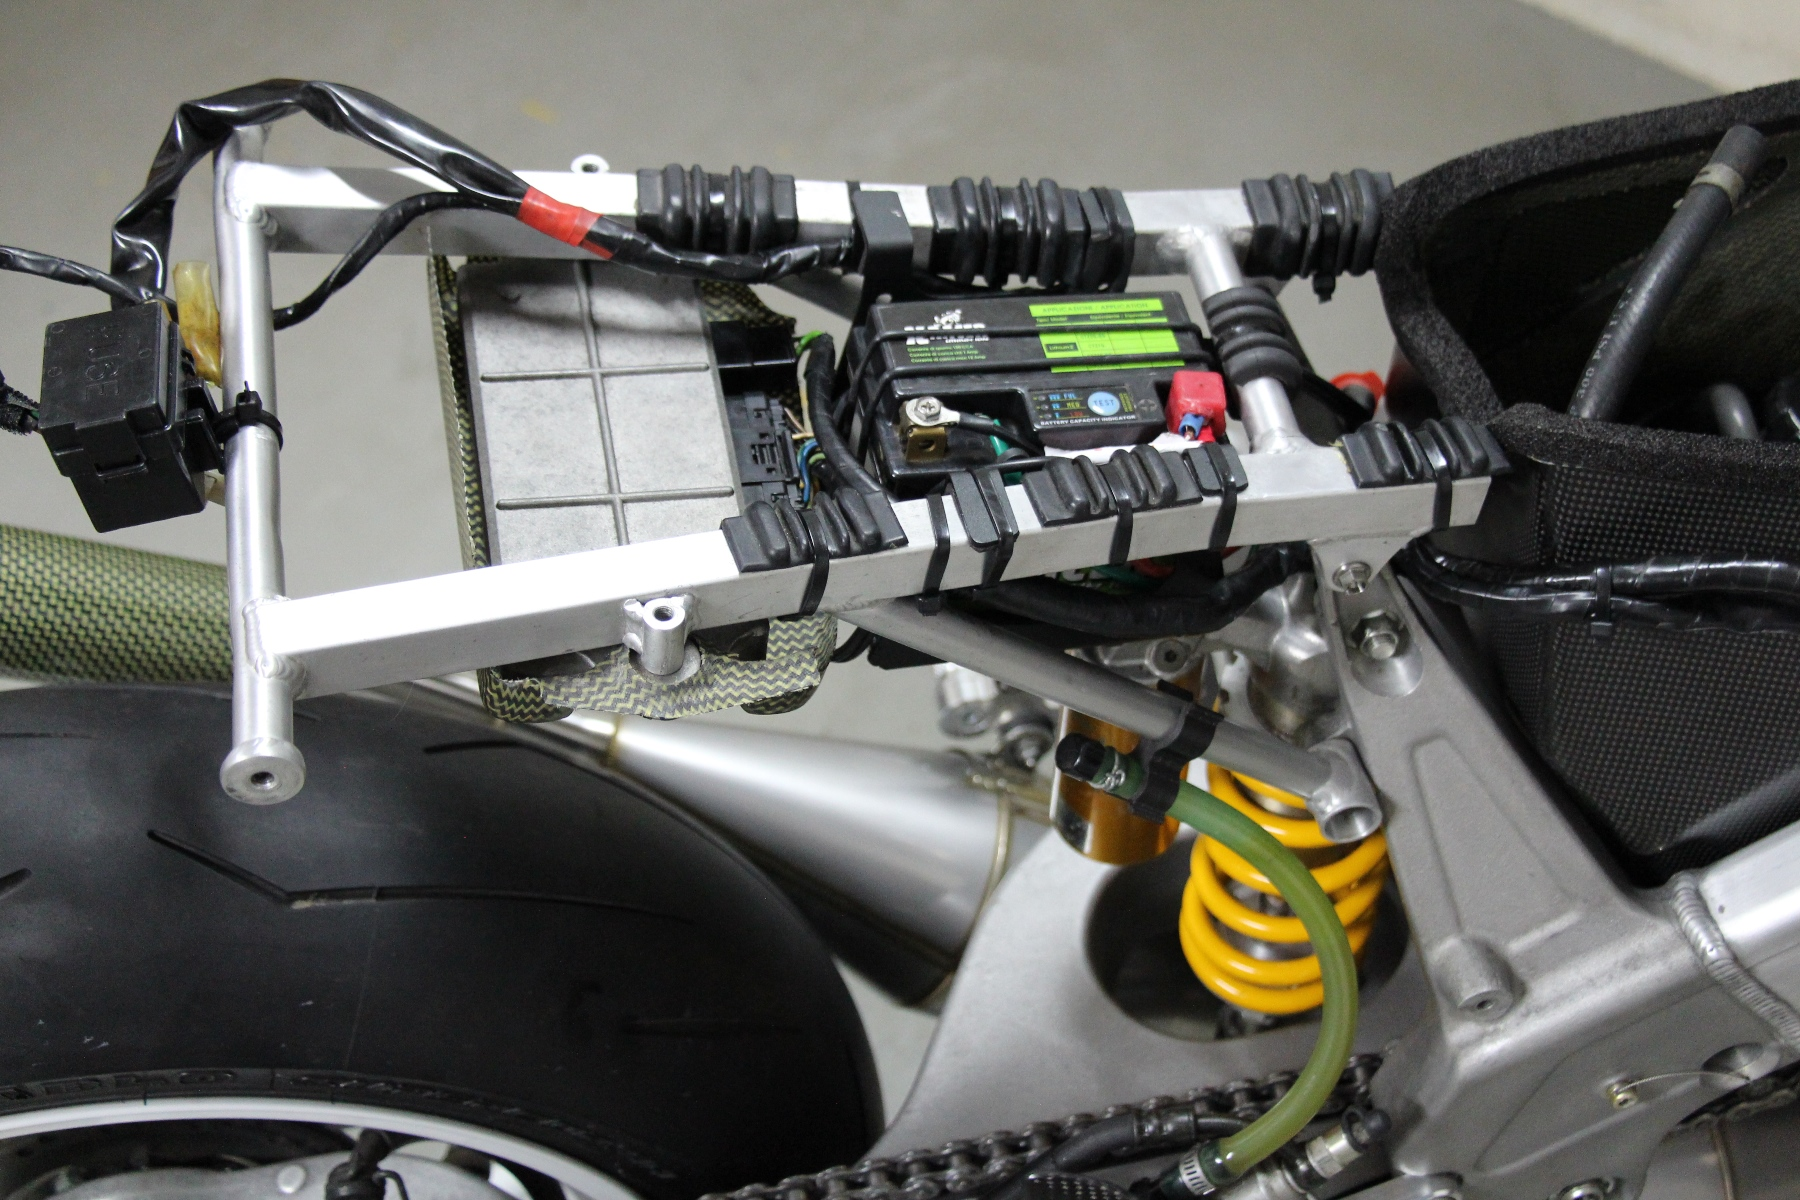 Tyga Street Nx 5 Rs250r S Performance Wiring Schematic 1994 Kawasaki Klx 650 Besides The Concept Is That This Bike Can Be Ridden To Track As A And Quickly Converted Back Pure Racer So In Sense Extra